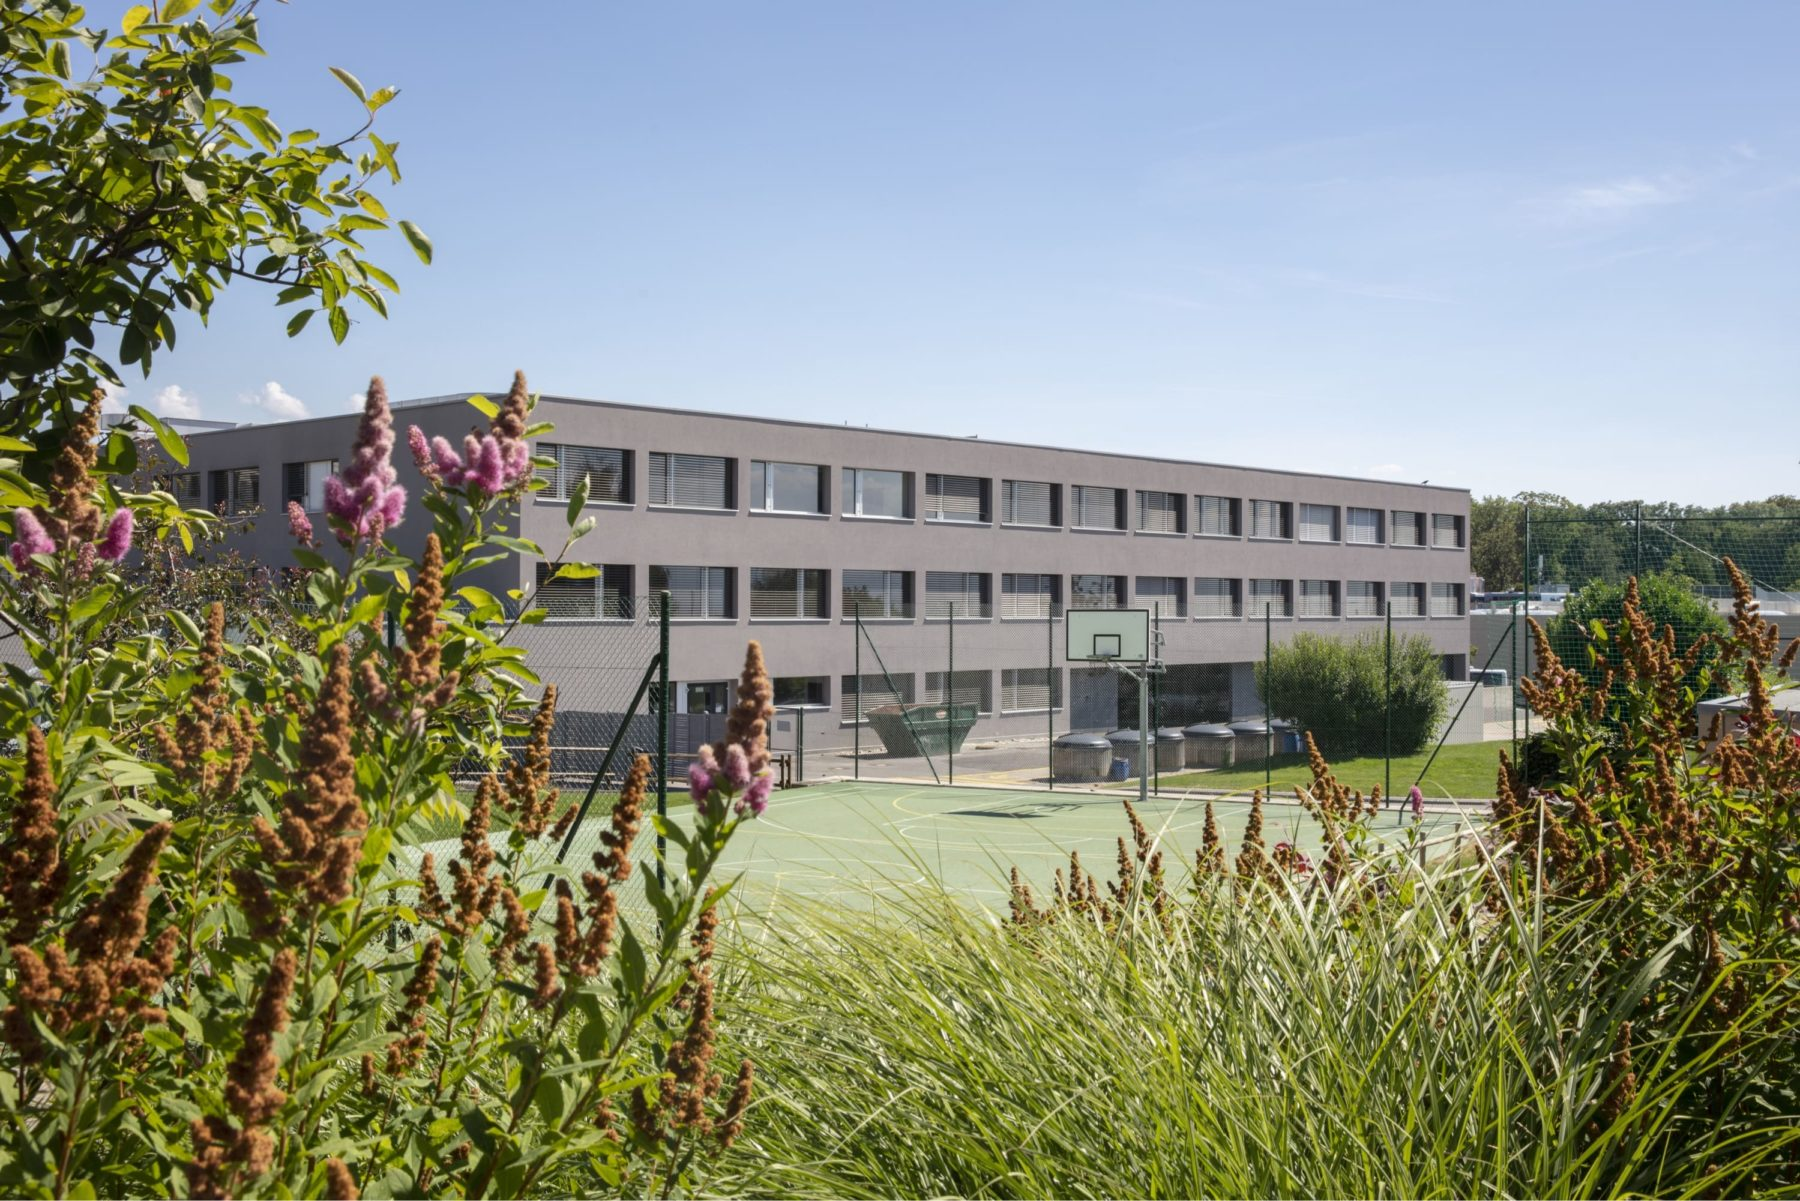 North campus International School of Lausanne